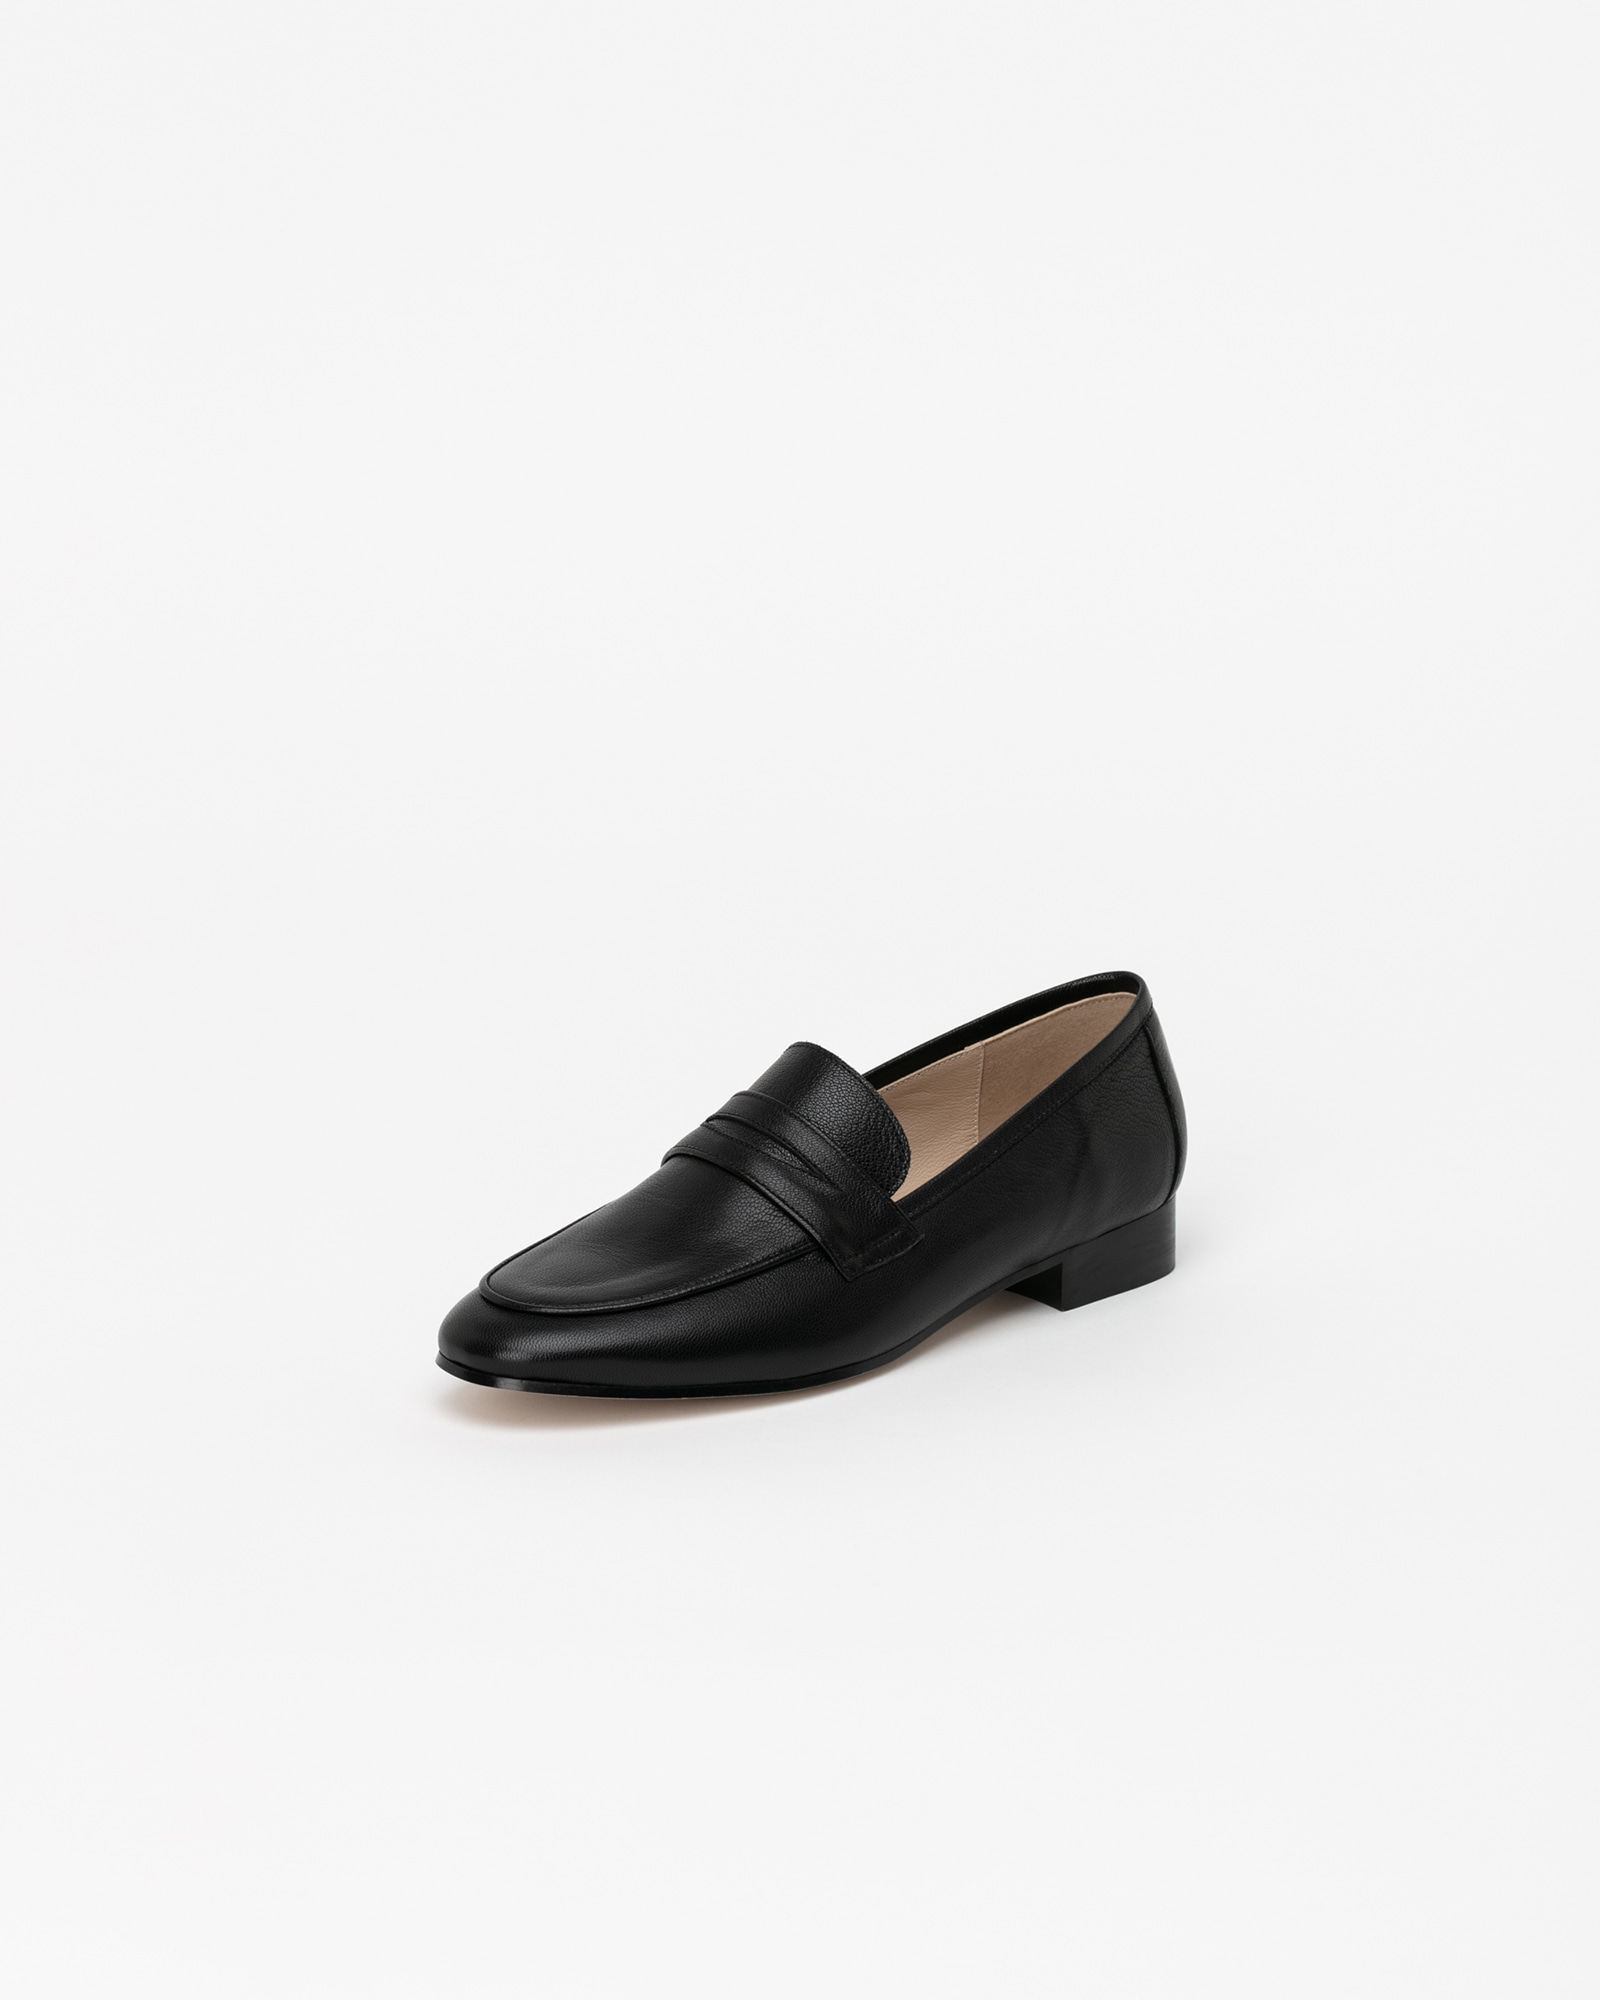 Sante Soft Loafers in Black